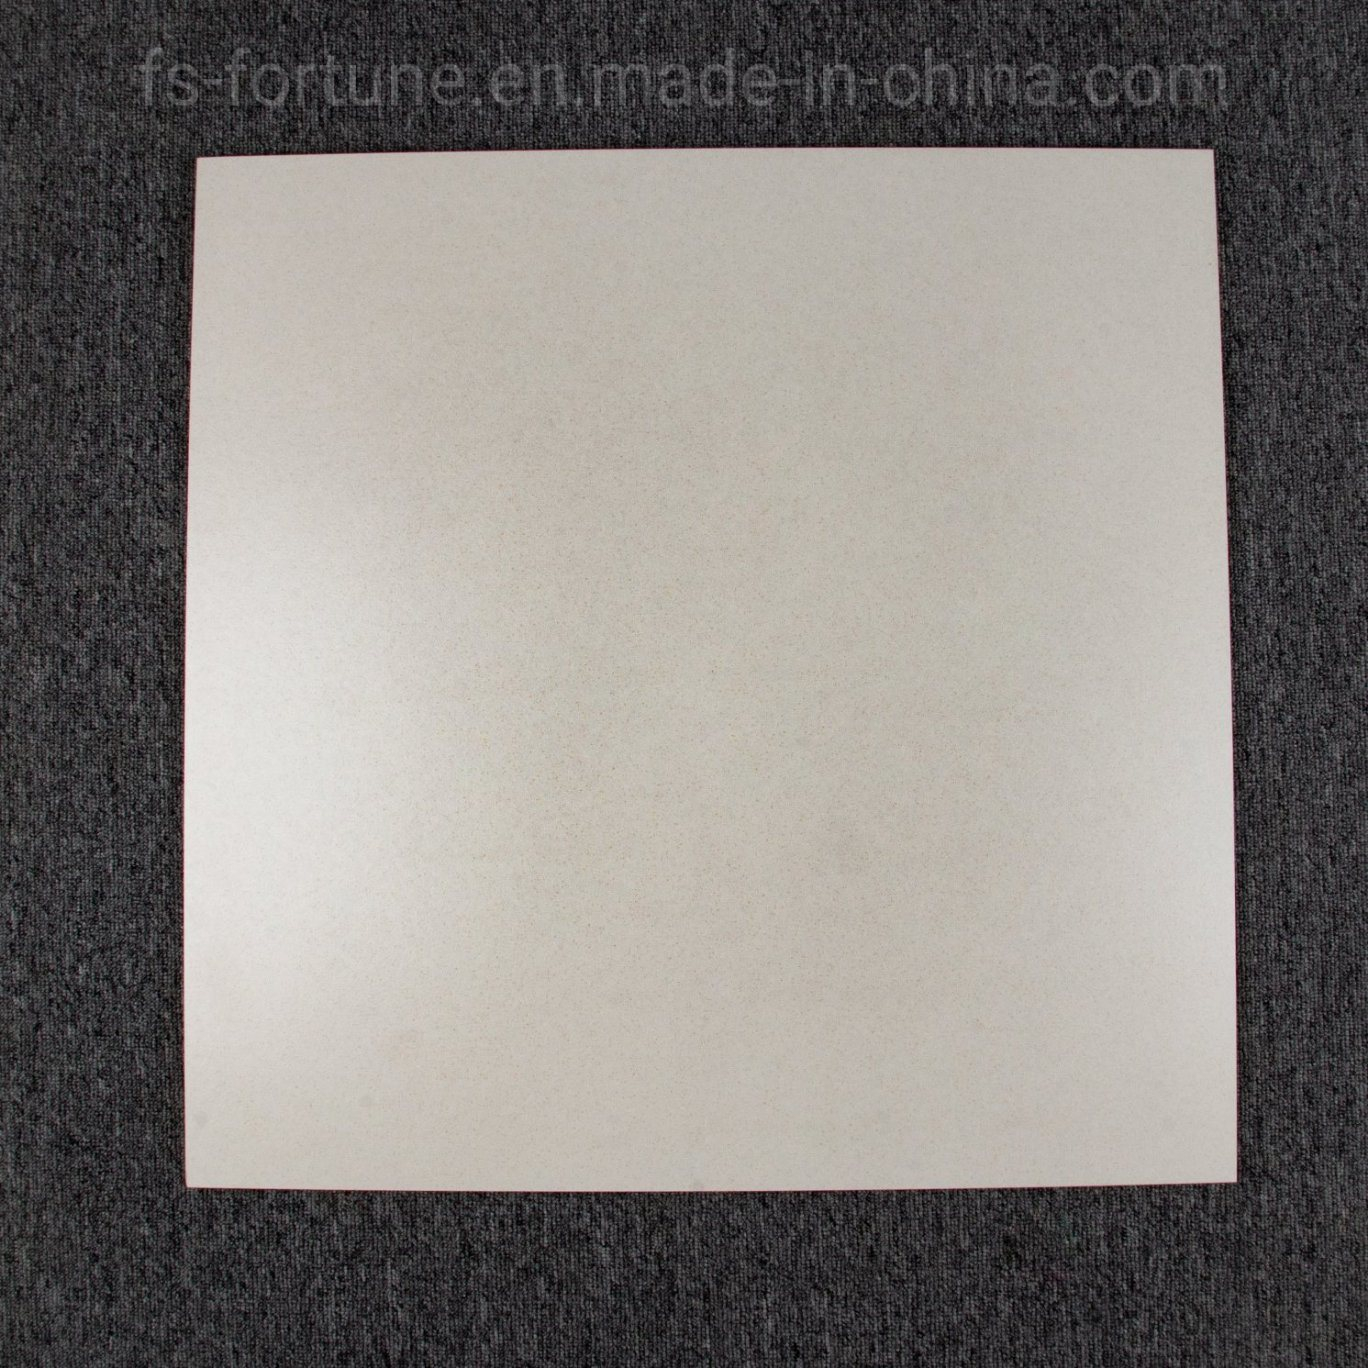 Hot Item 600x600 Milan Luxury Pure White Kitchen Non Slip Fullbody Rustic Floor Tile intended for size 1368 X 1368